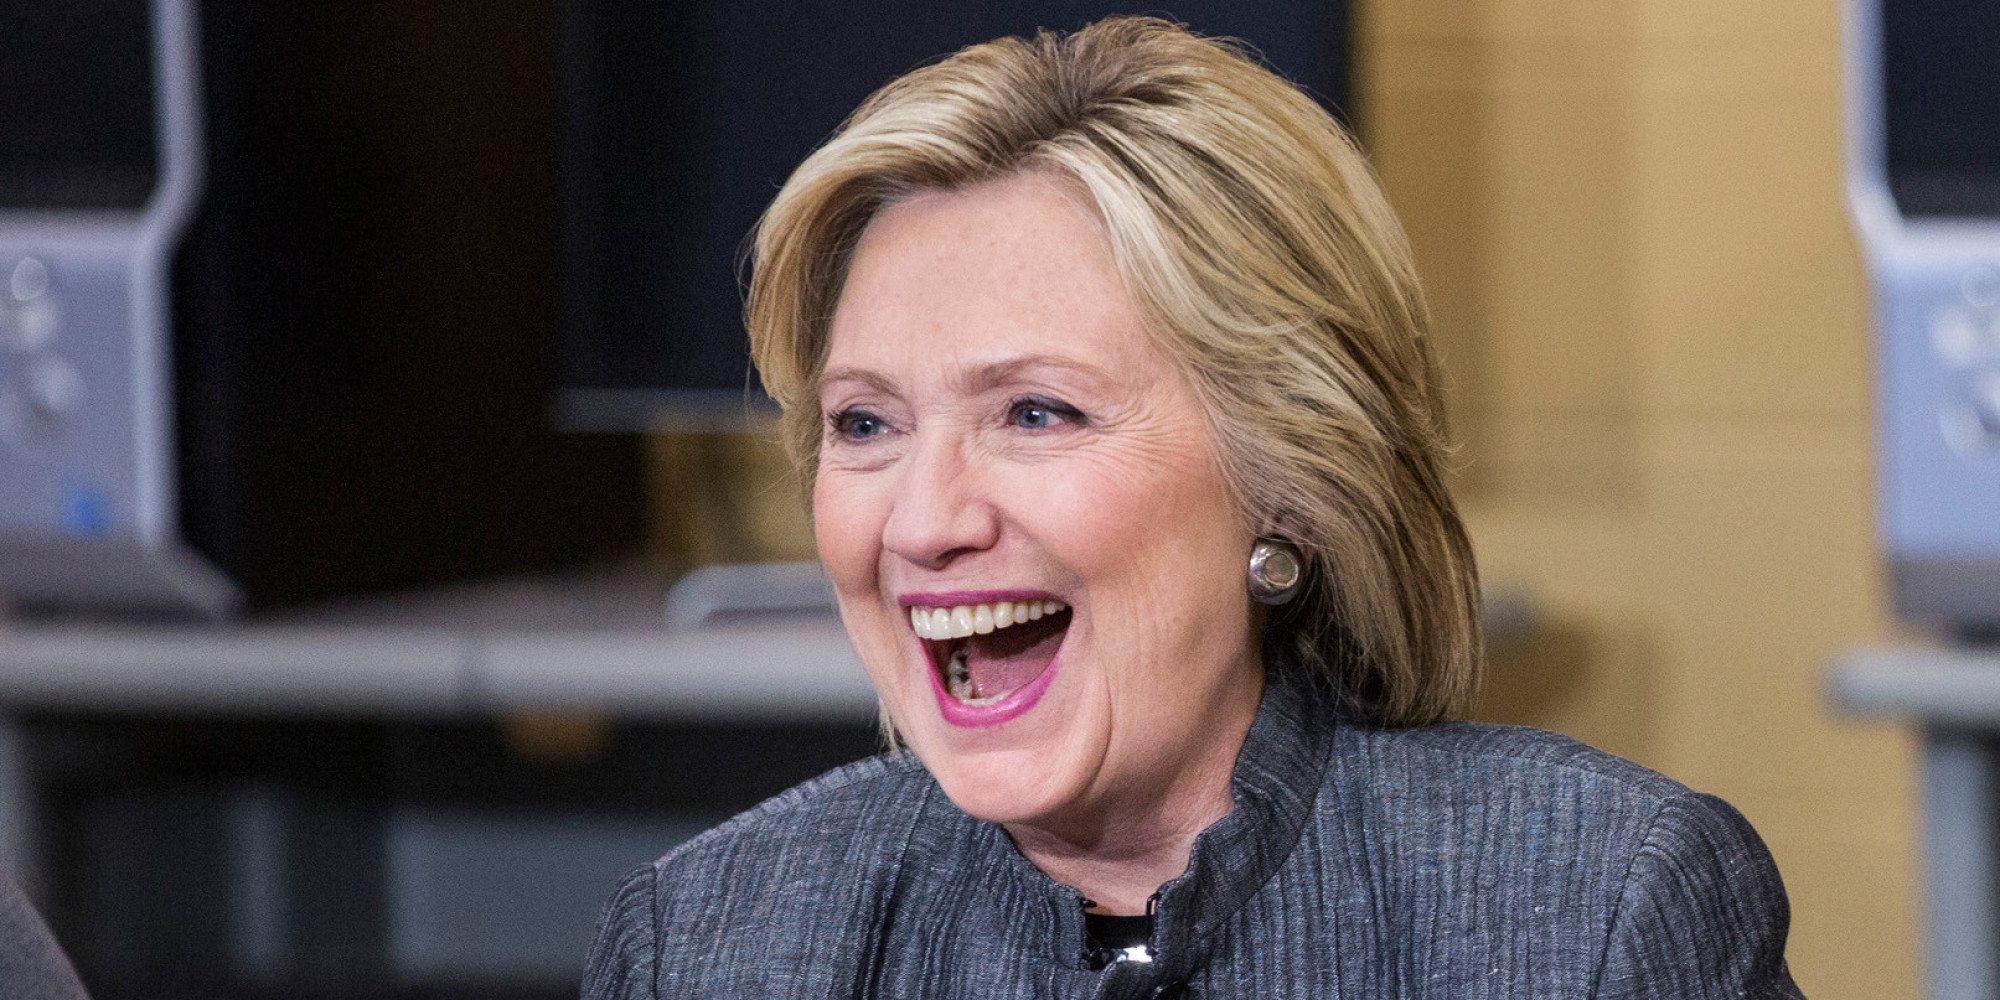 Elizabeth Banks' Whohaha-Hillary Clinton Laughing